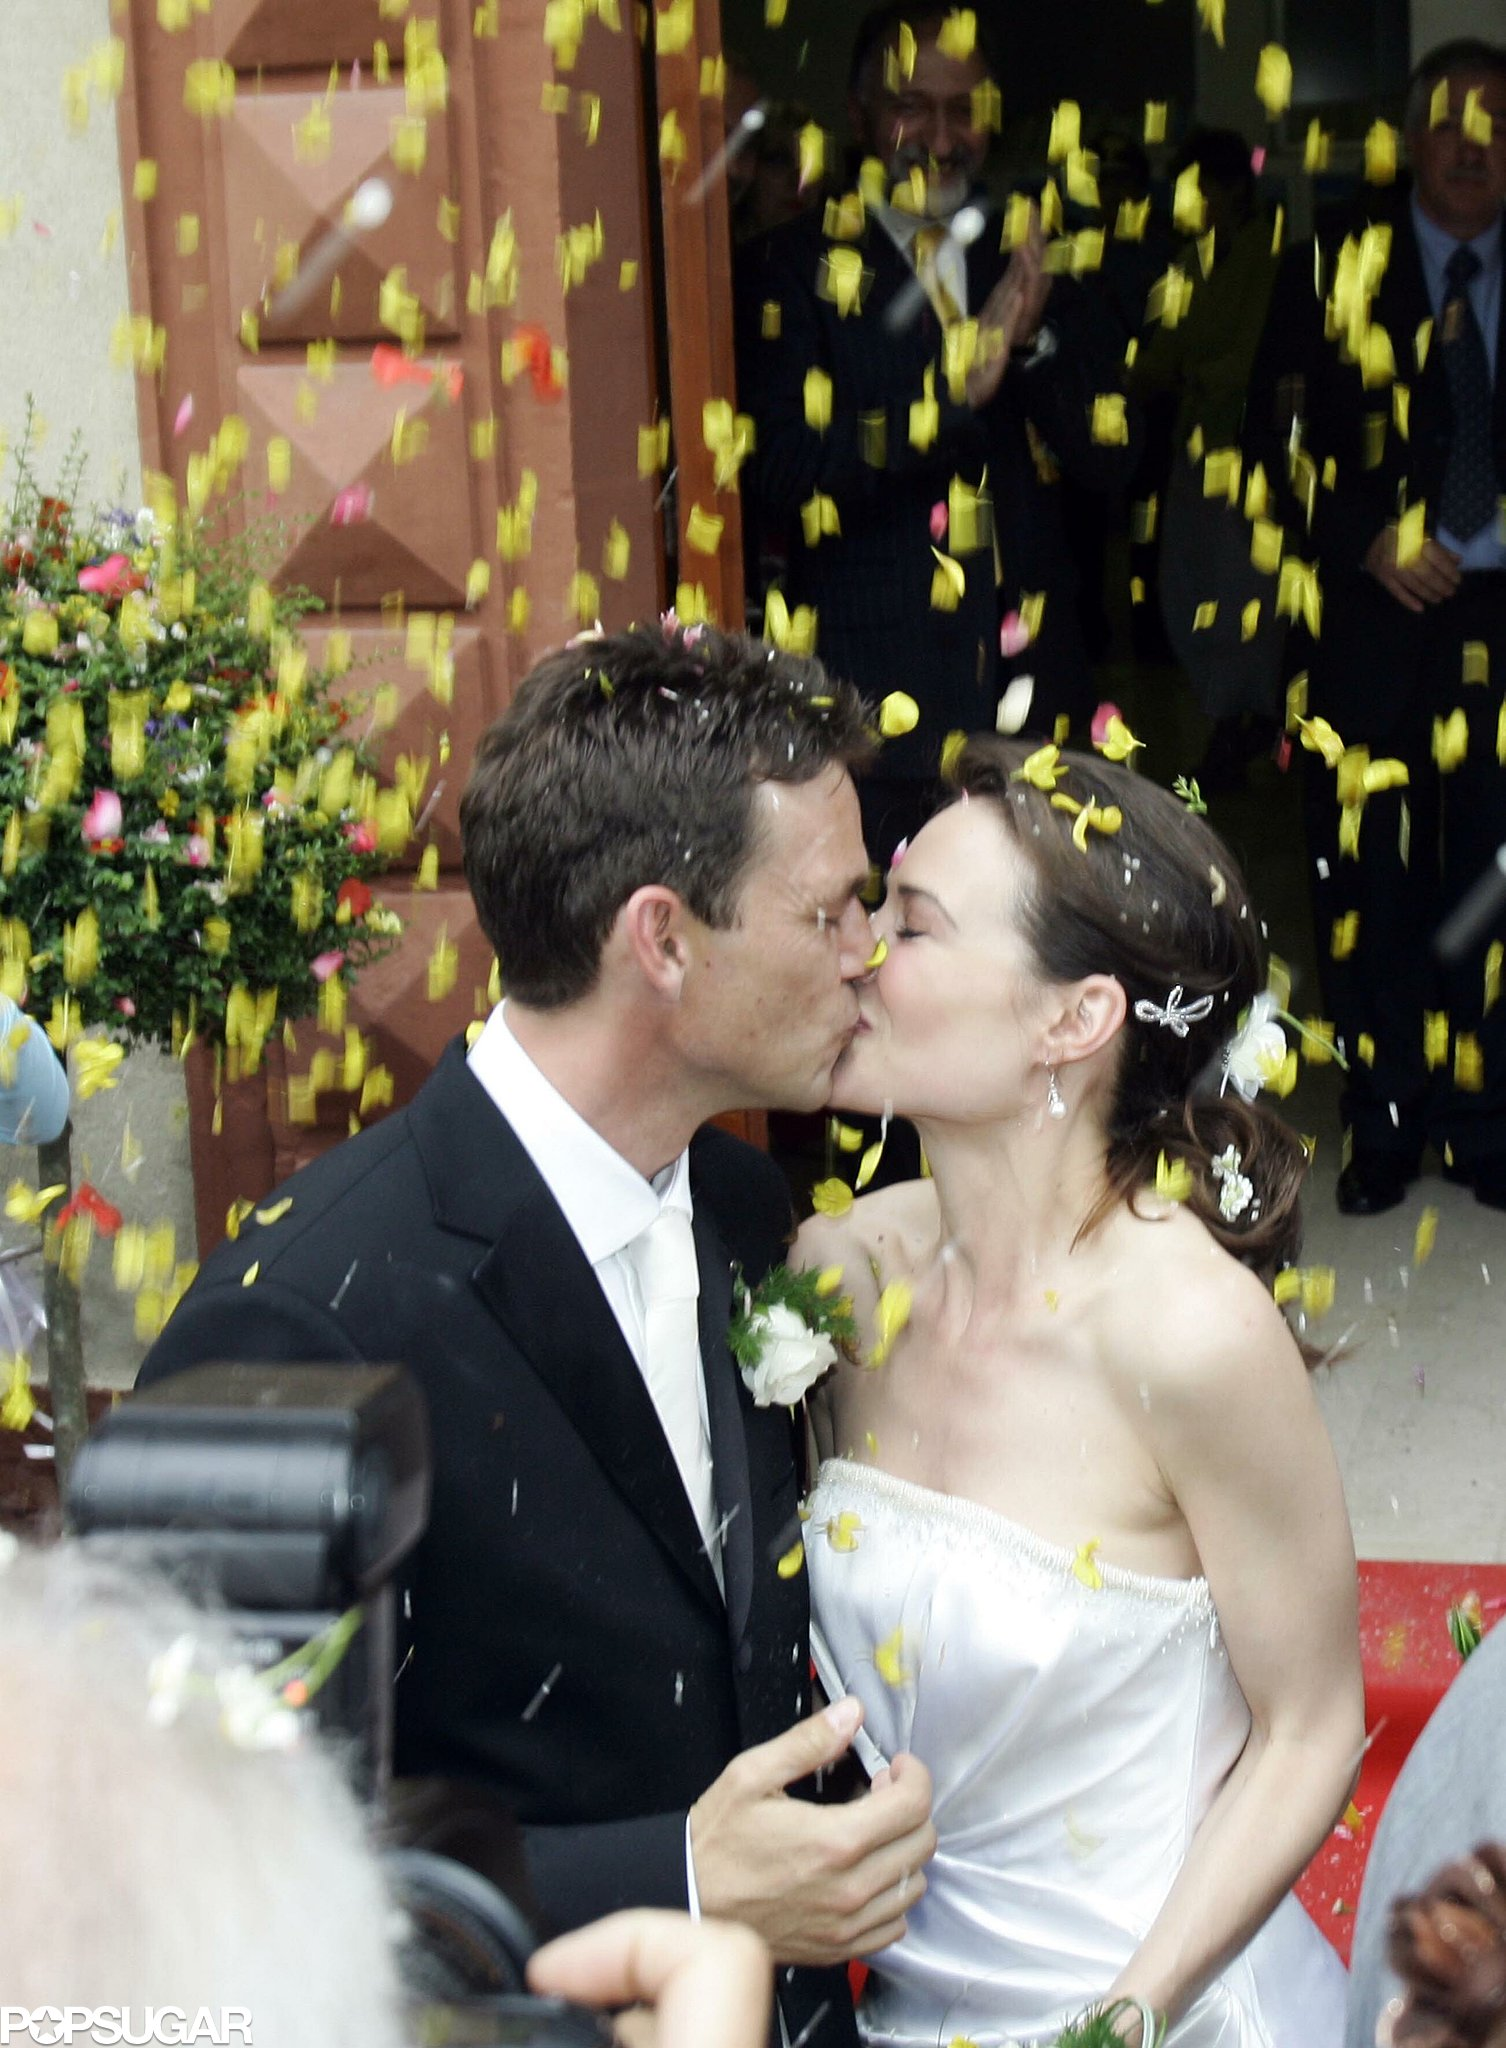 Claire Forlani and Dougray Scott wed June 2007 in Italy.